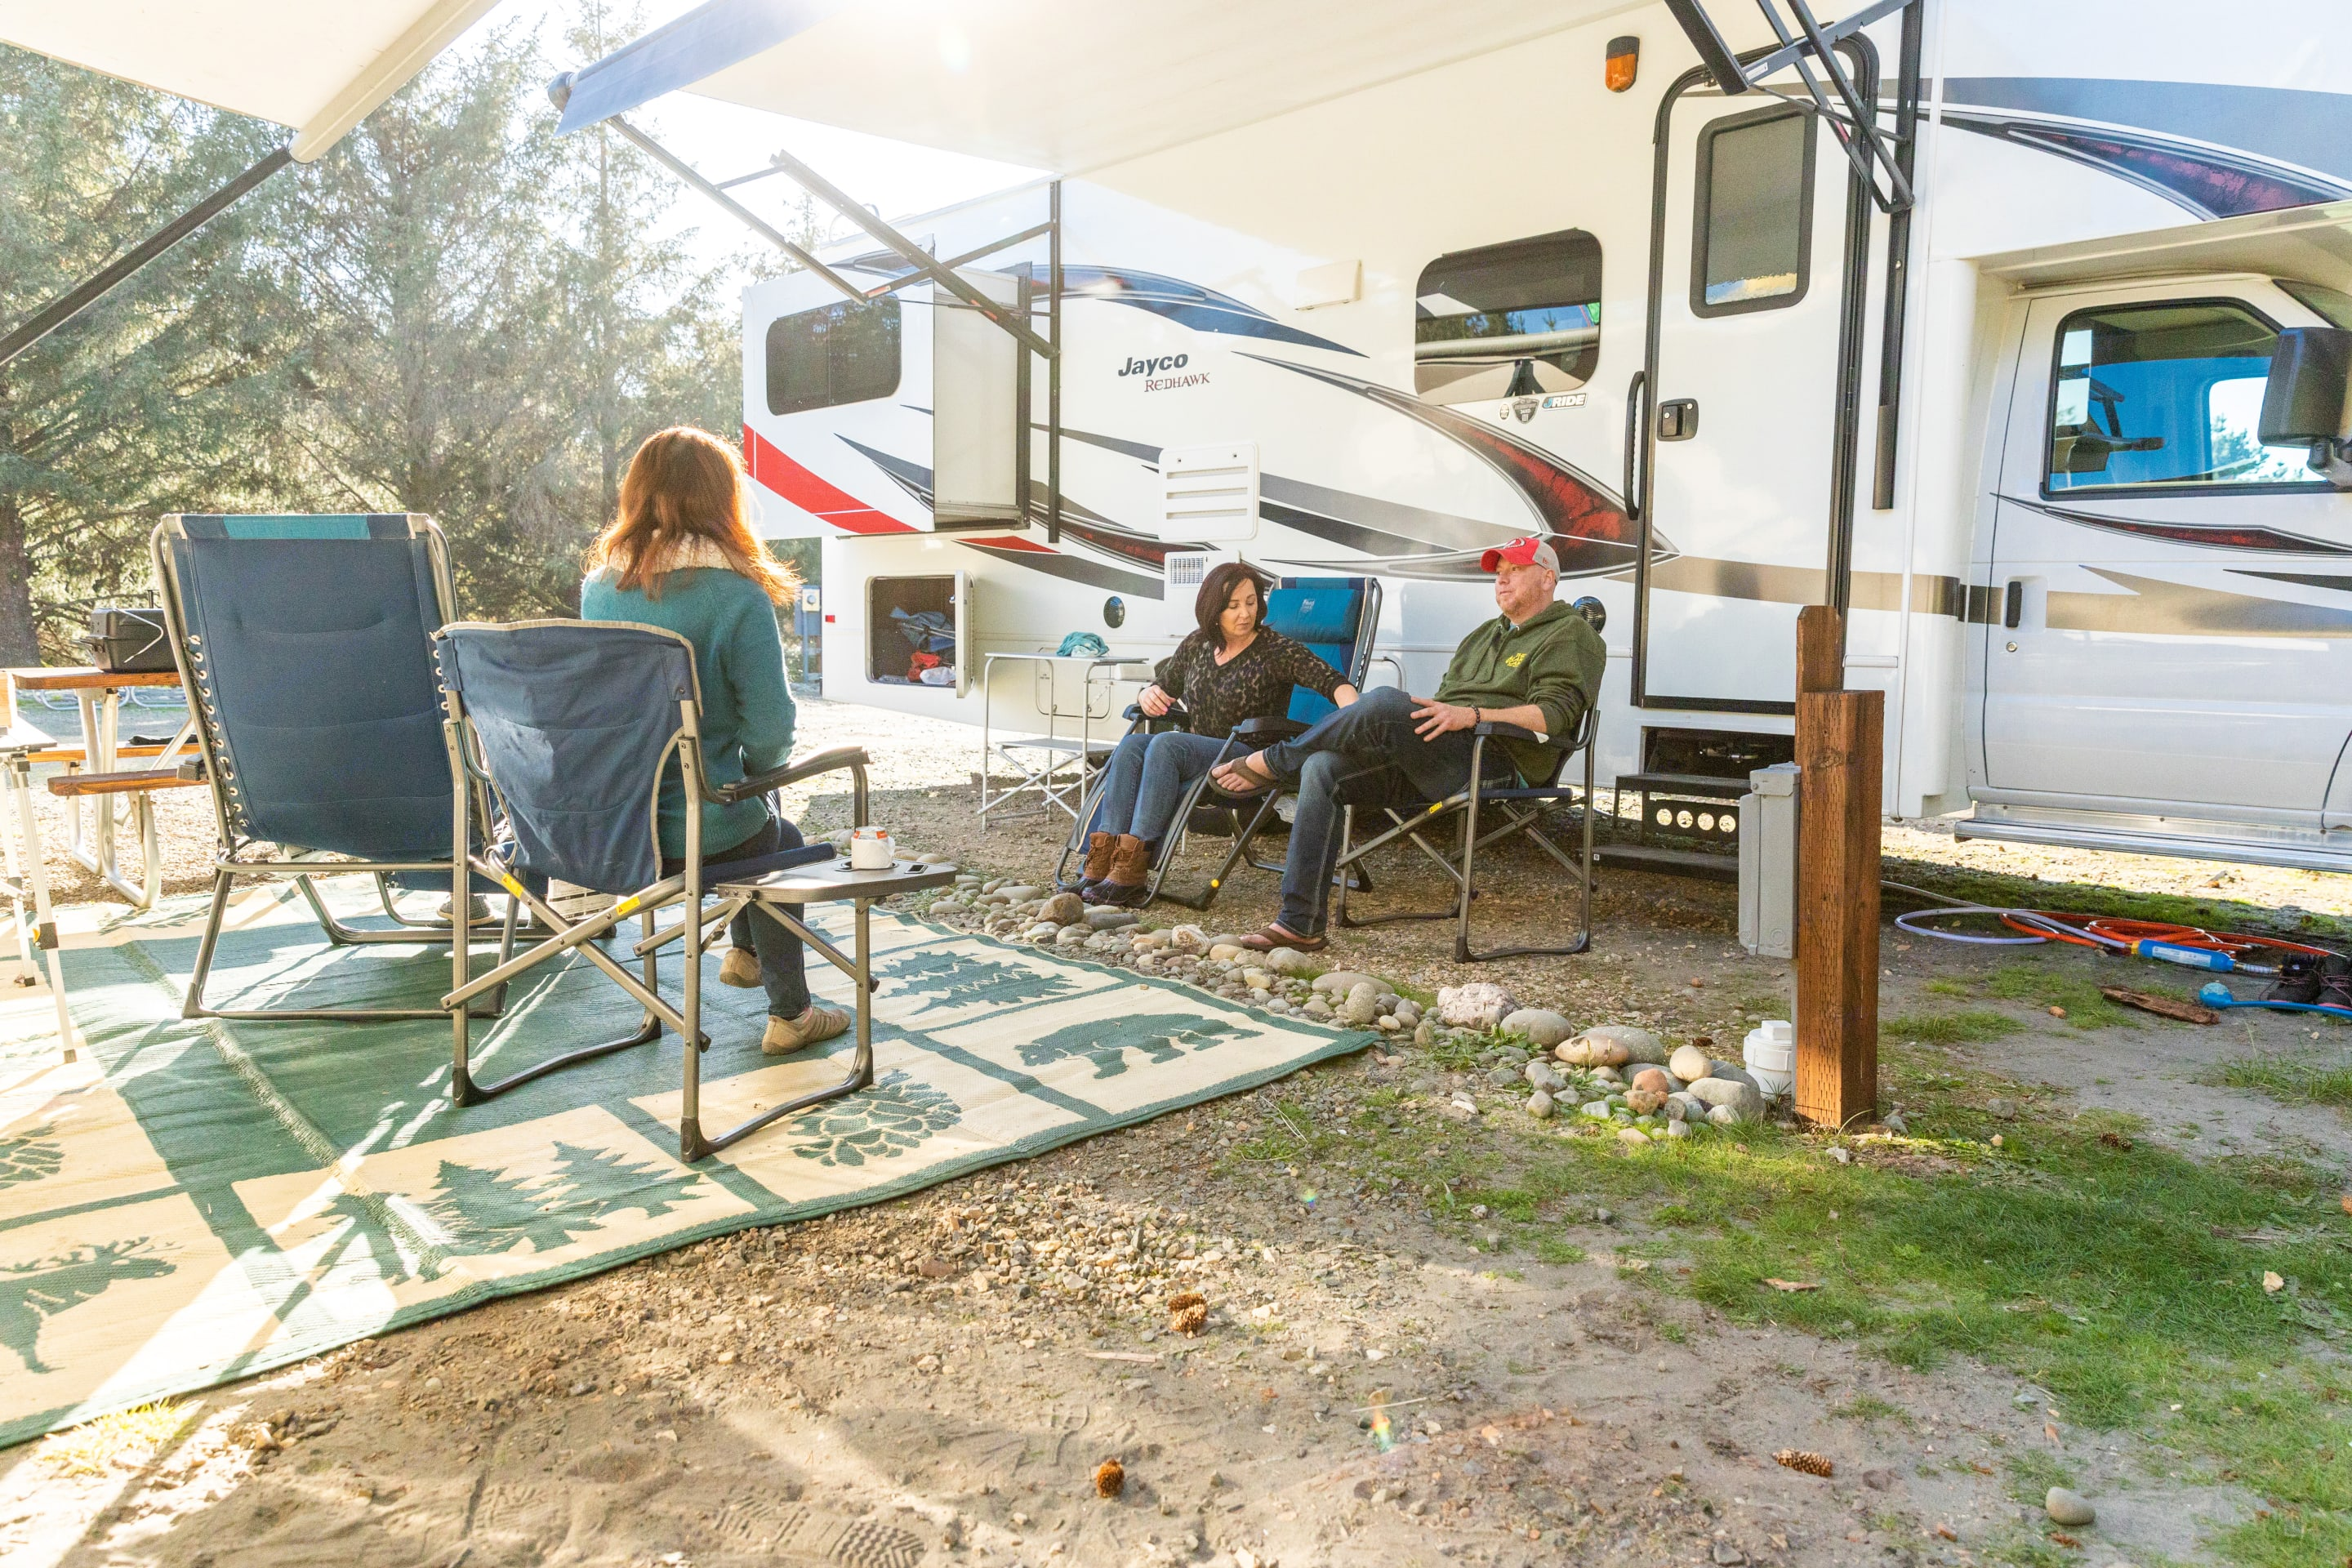 Perfect Size for a Small Family Getaway. Jayco Redhawk 2018